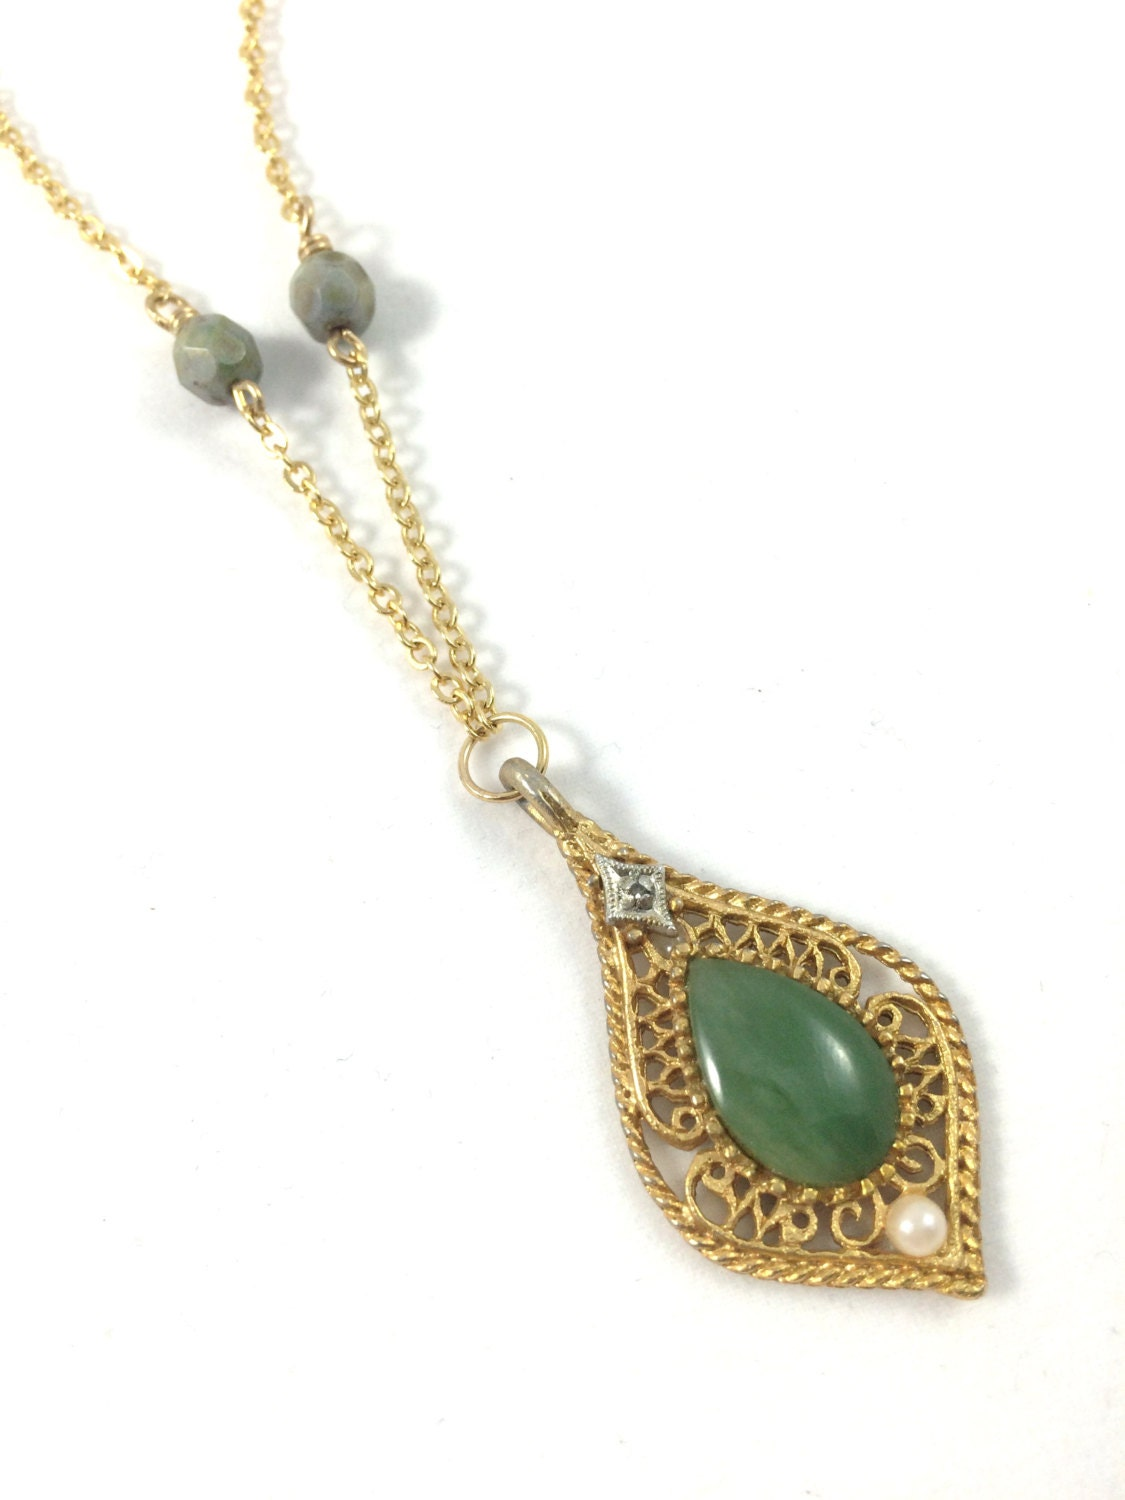 Vintage jade pendant necklace filigree necklace czech beads for Pictures of jade jewelry